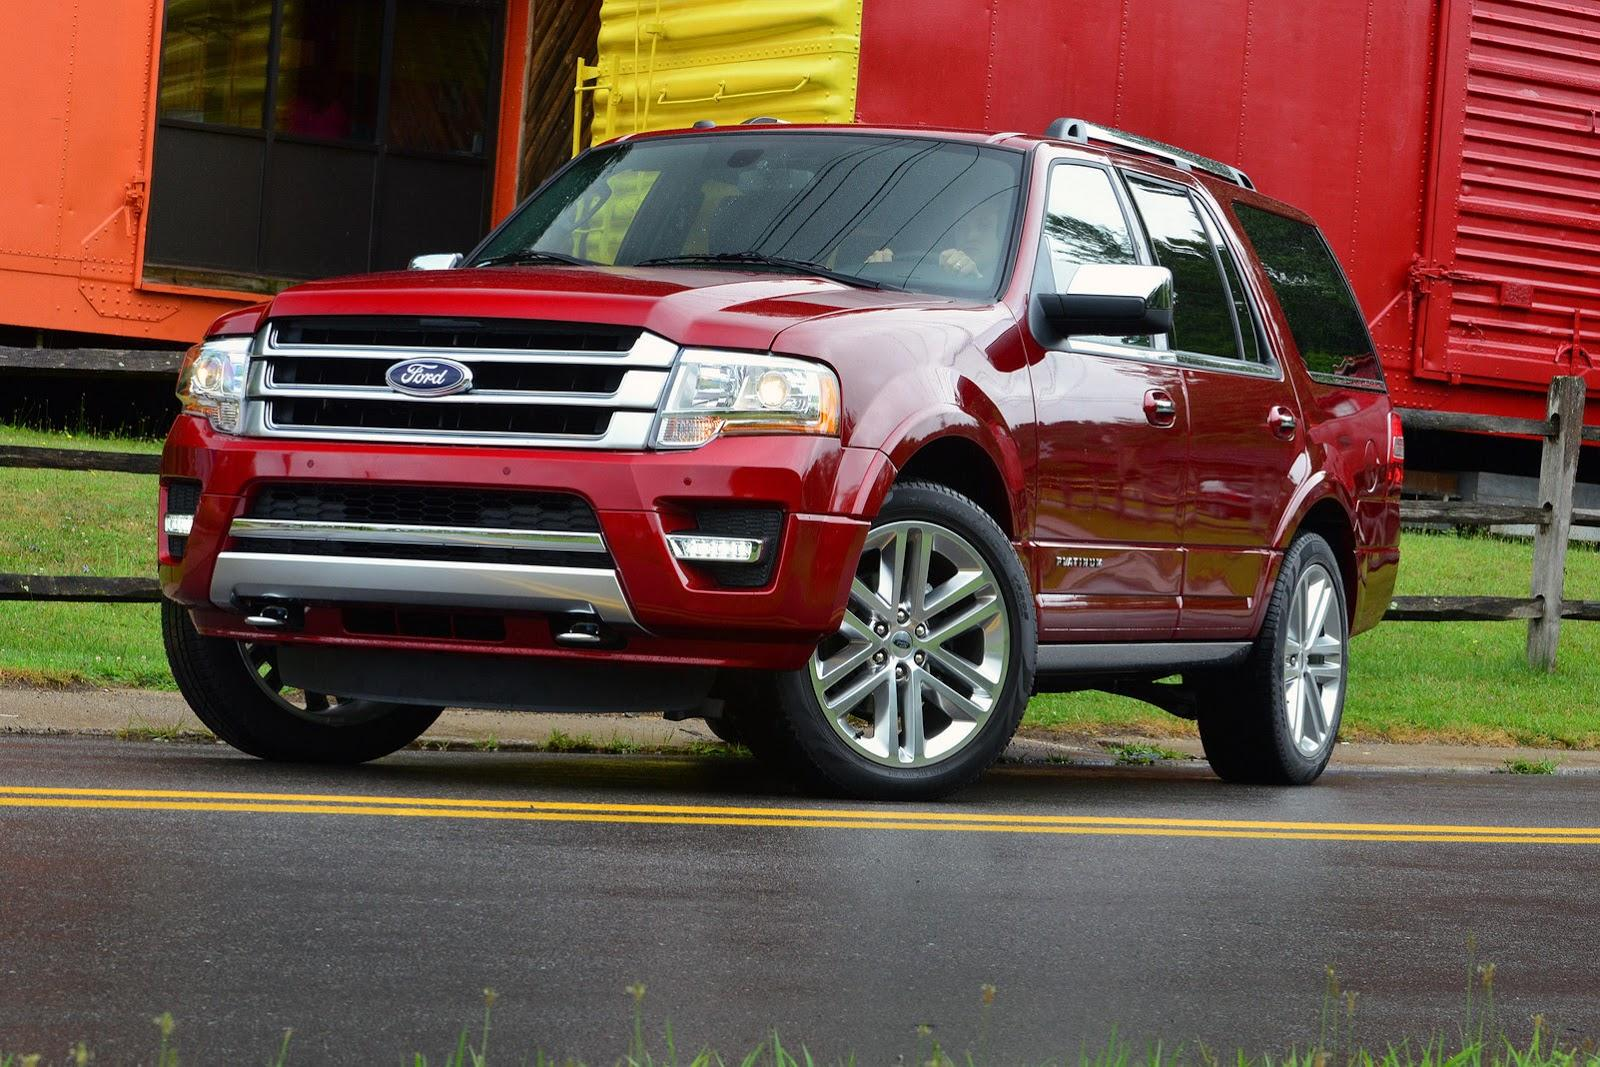 Ford Expedition photo 125311